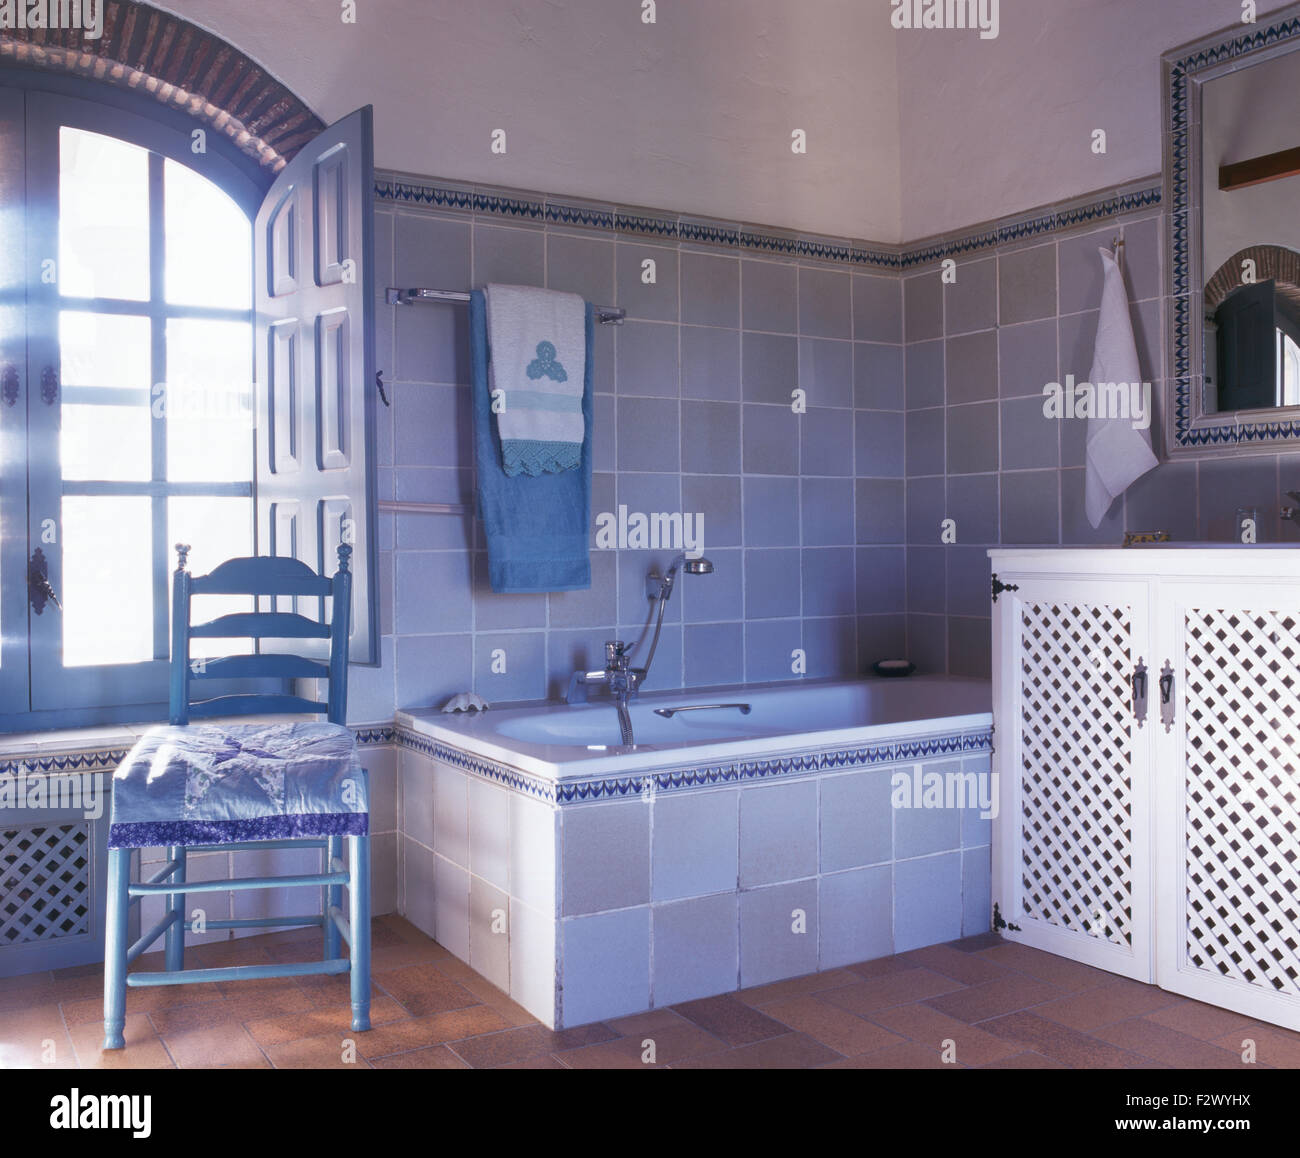 Painted Ladder Back Chair In Pale Blue Grey Tiled Spanish Bathroom Stock Photo Alamy